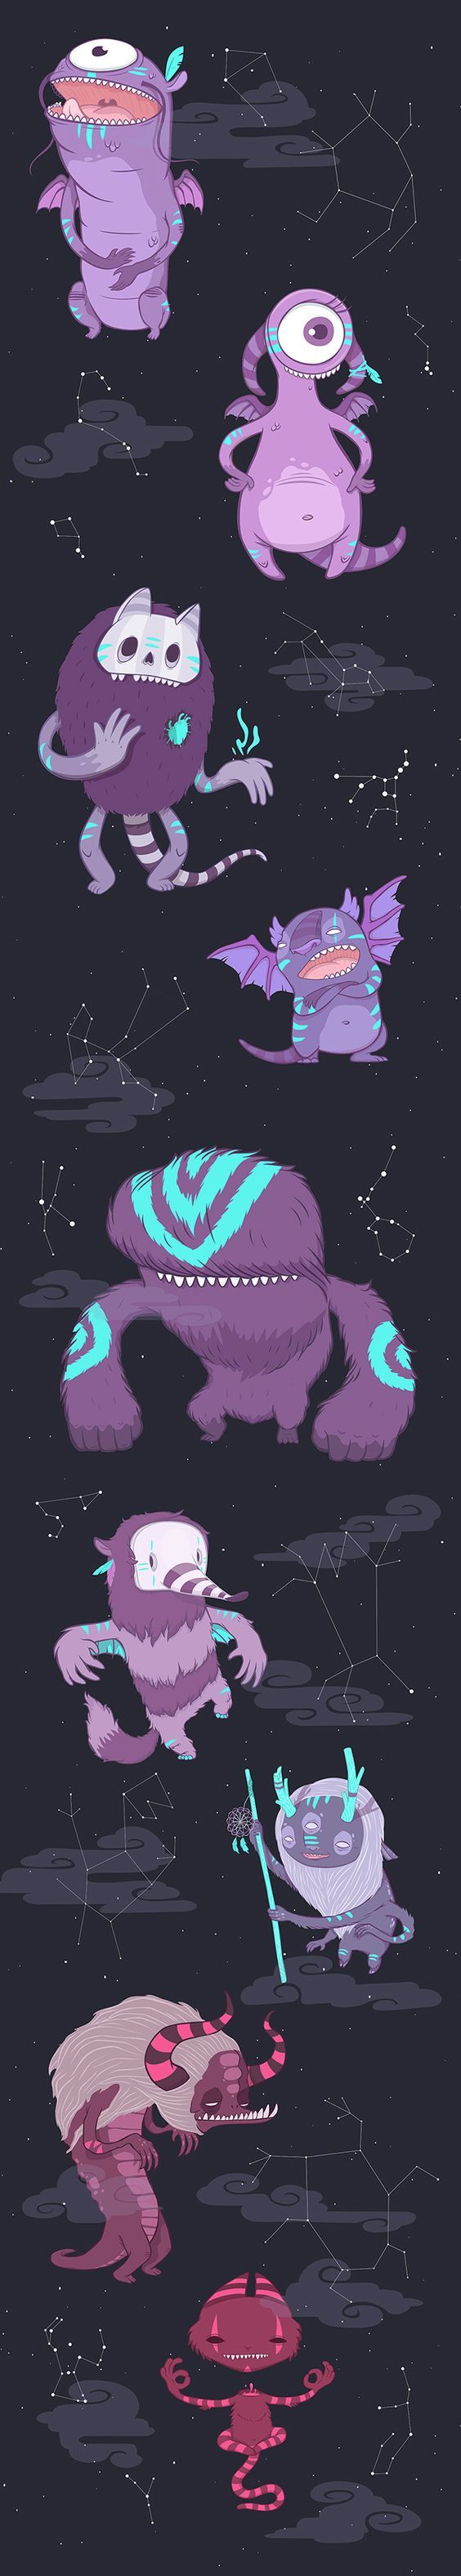 175 best monster images on Pinterest | Monster illustration ...